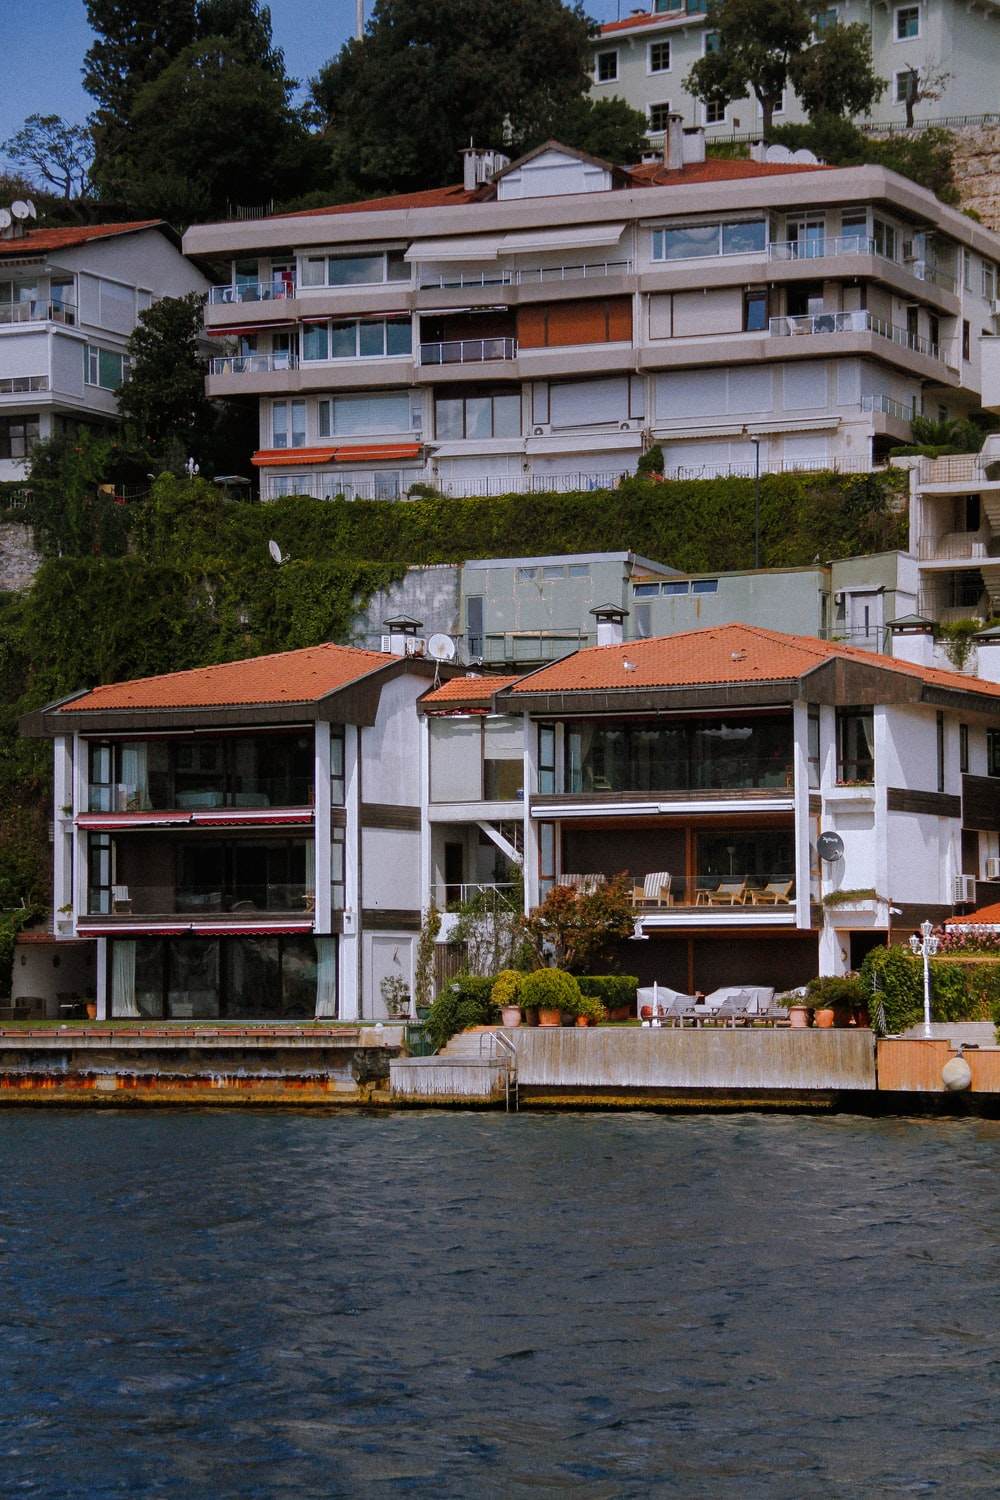 white and brown concrete house beside body of water during daytime